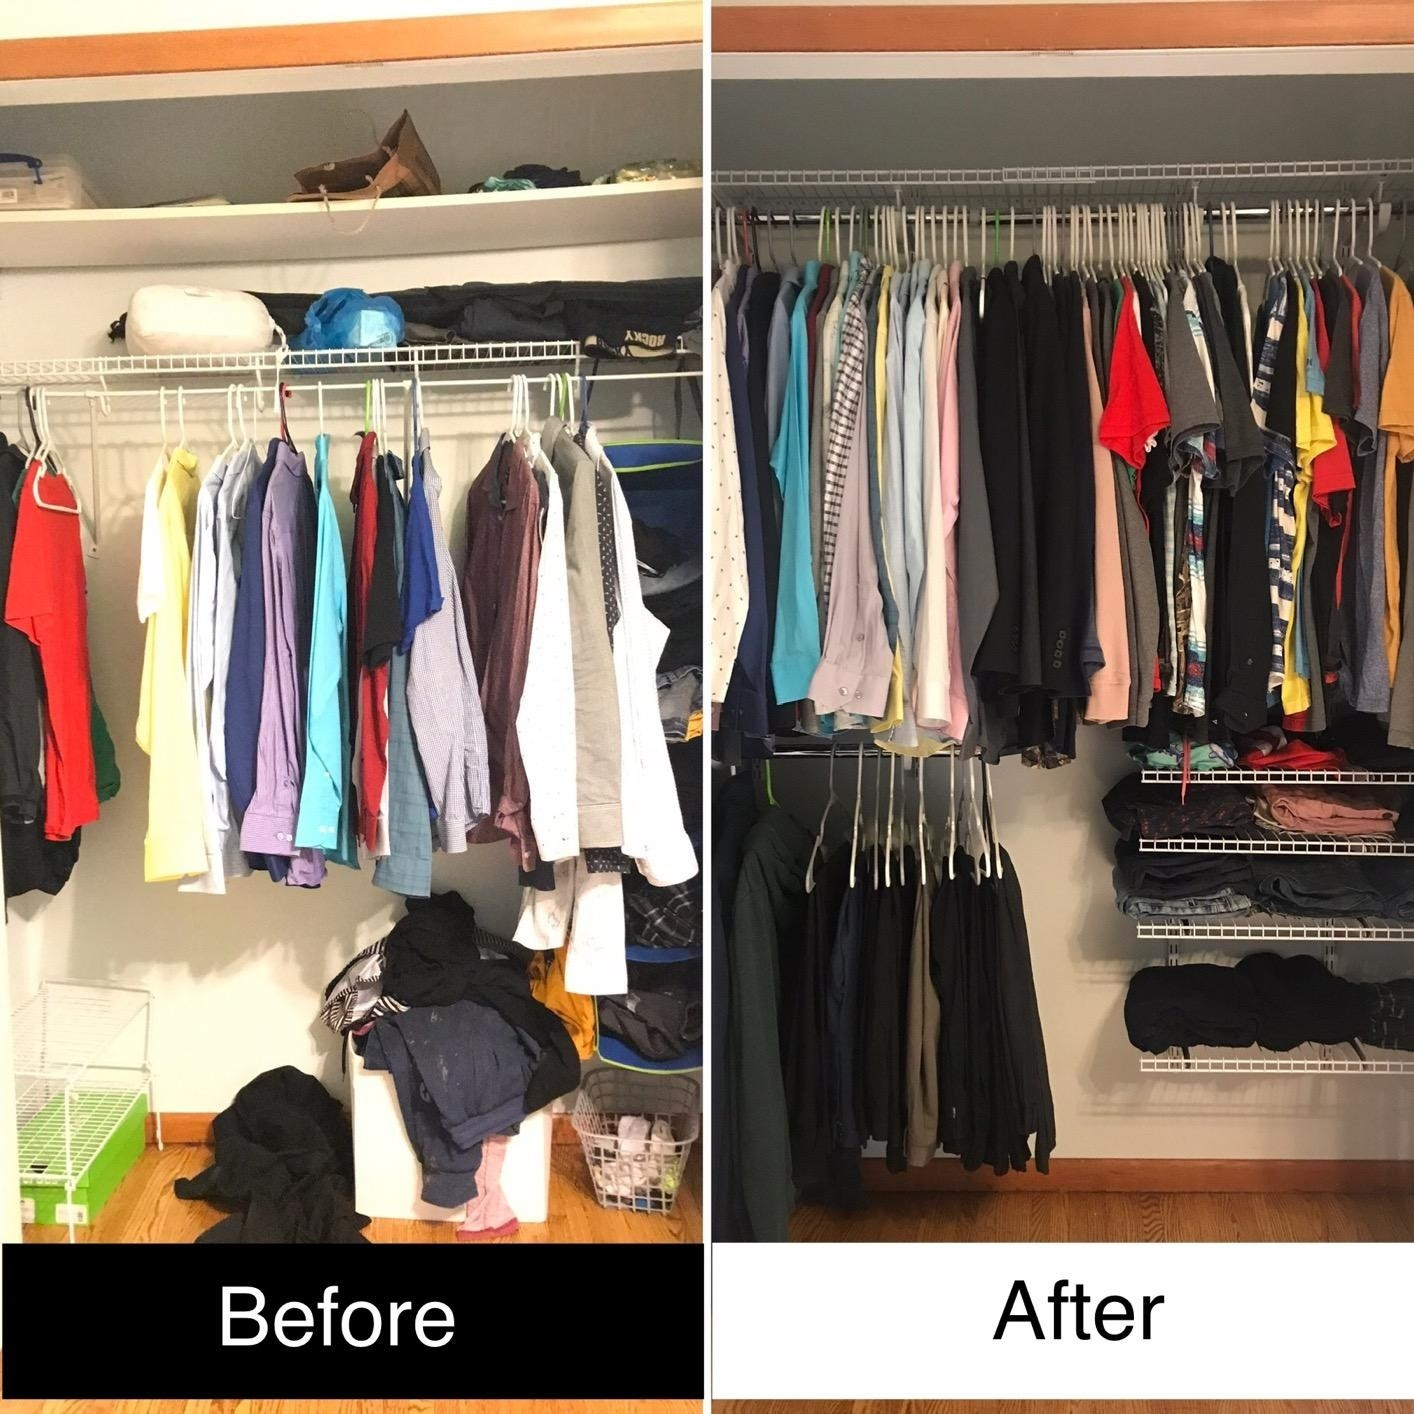 A before and after image showing the closet system, which includes racks and two closet rods, used to make a reviewer's closet more organized